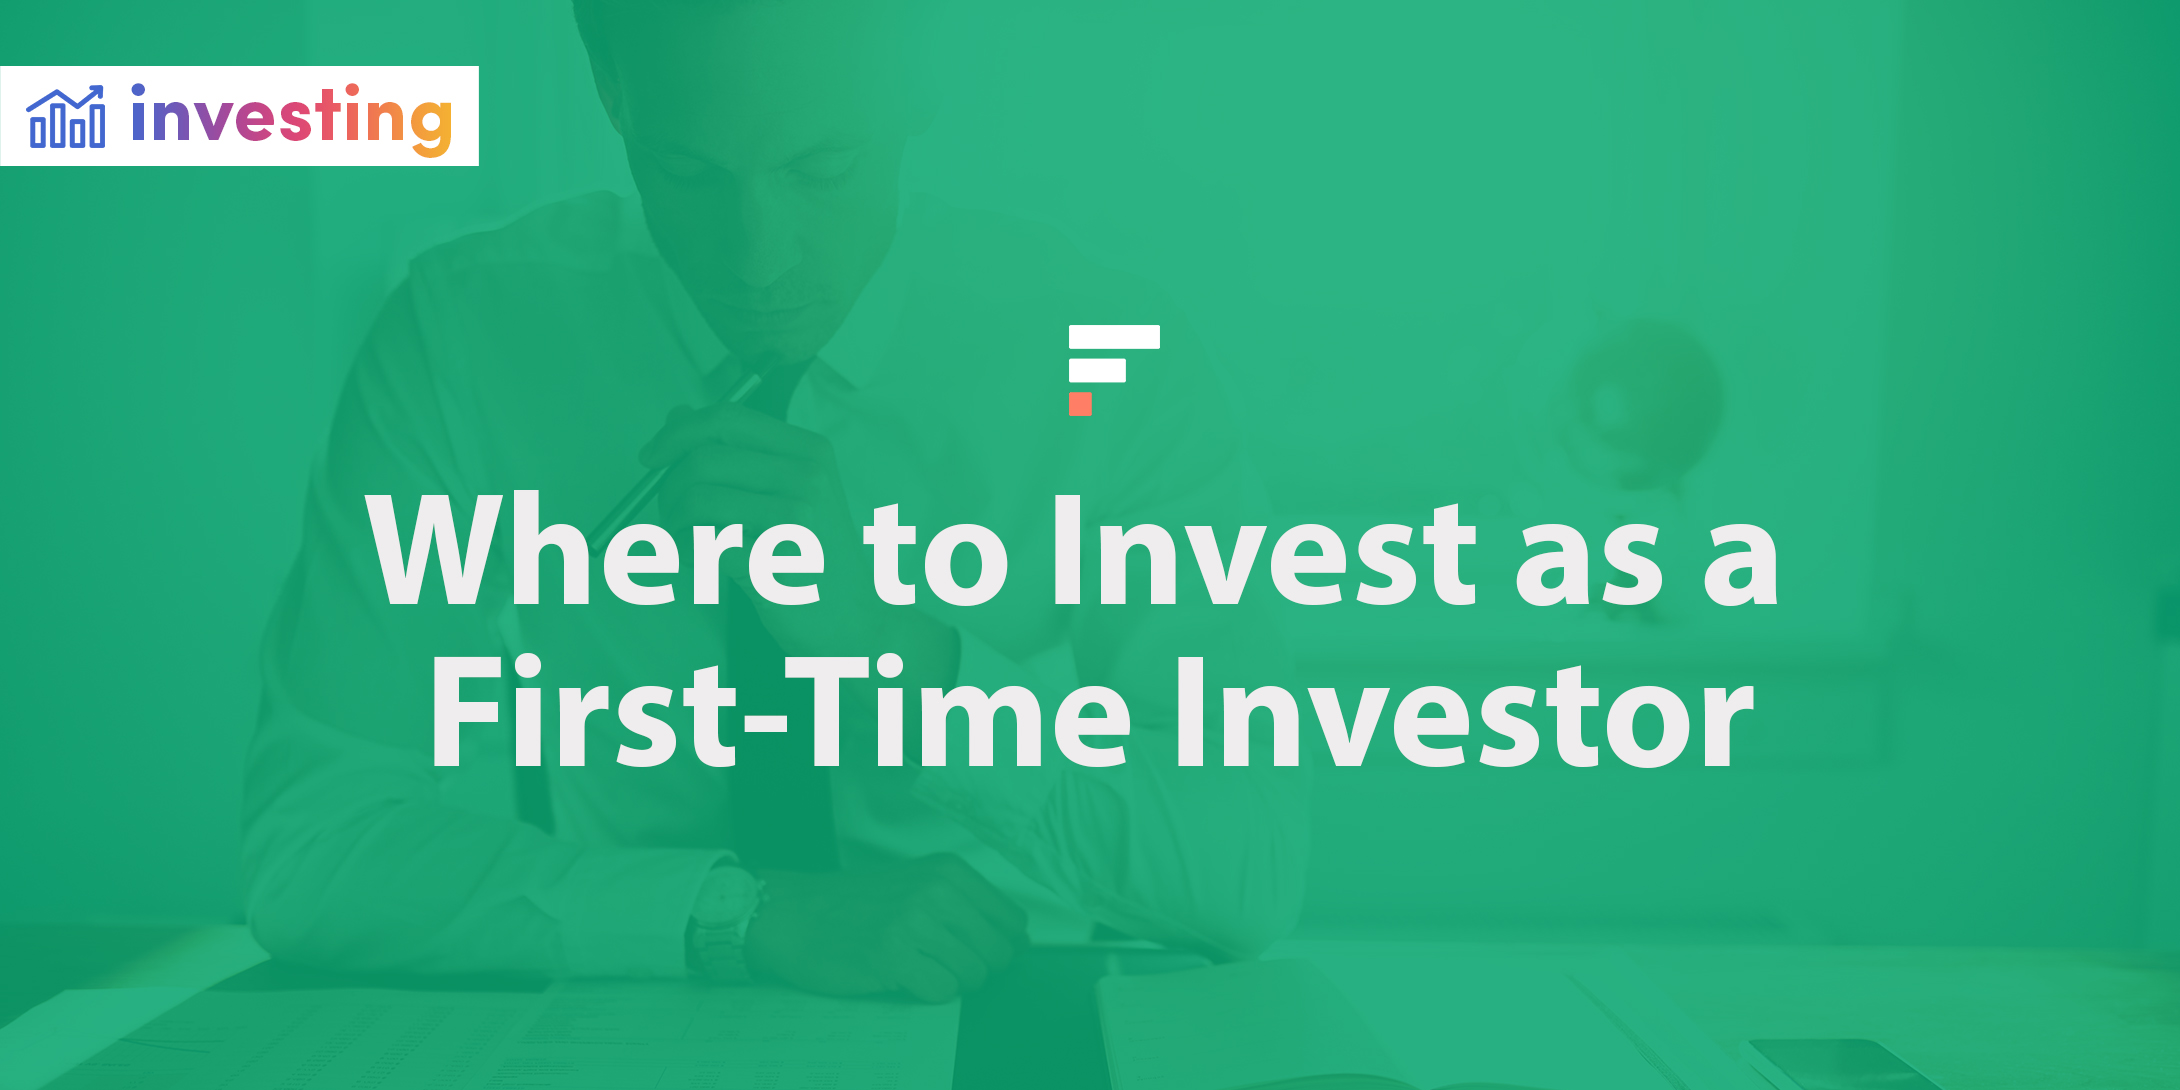 Where to invest as a first-time investor